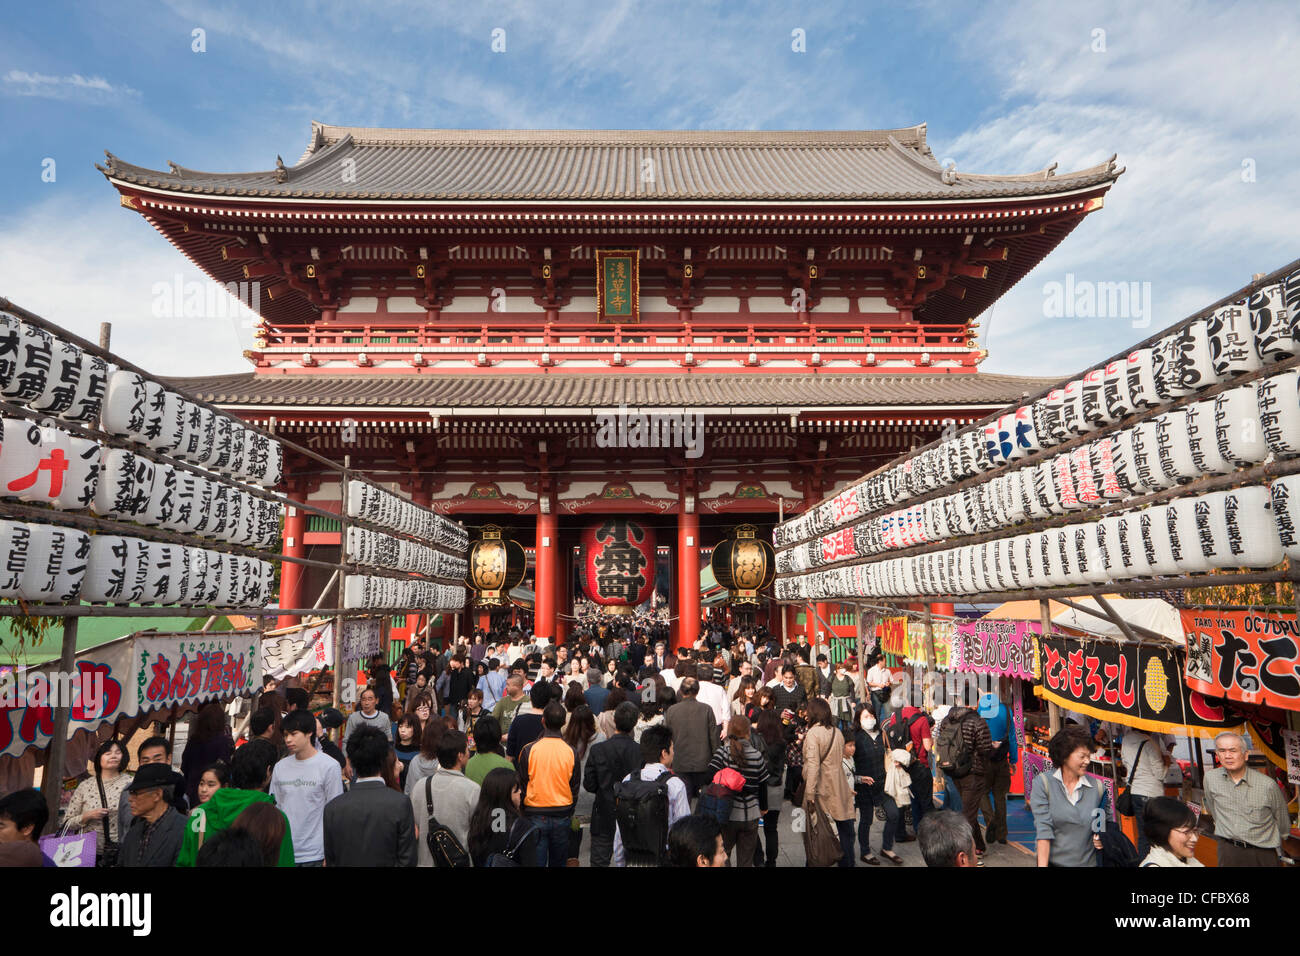 Japan, Asia, Tokyo, city, Asakusa, District, Sensoji, Temple, busy, crowd, entrance, famous, gate, lanterns, outside, - Stock Image